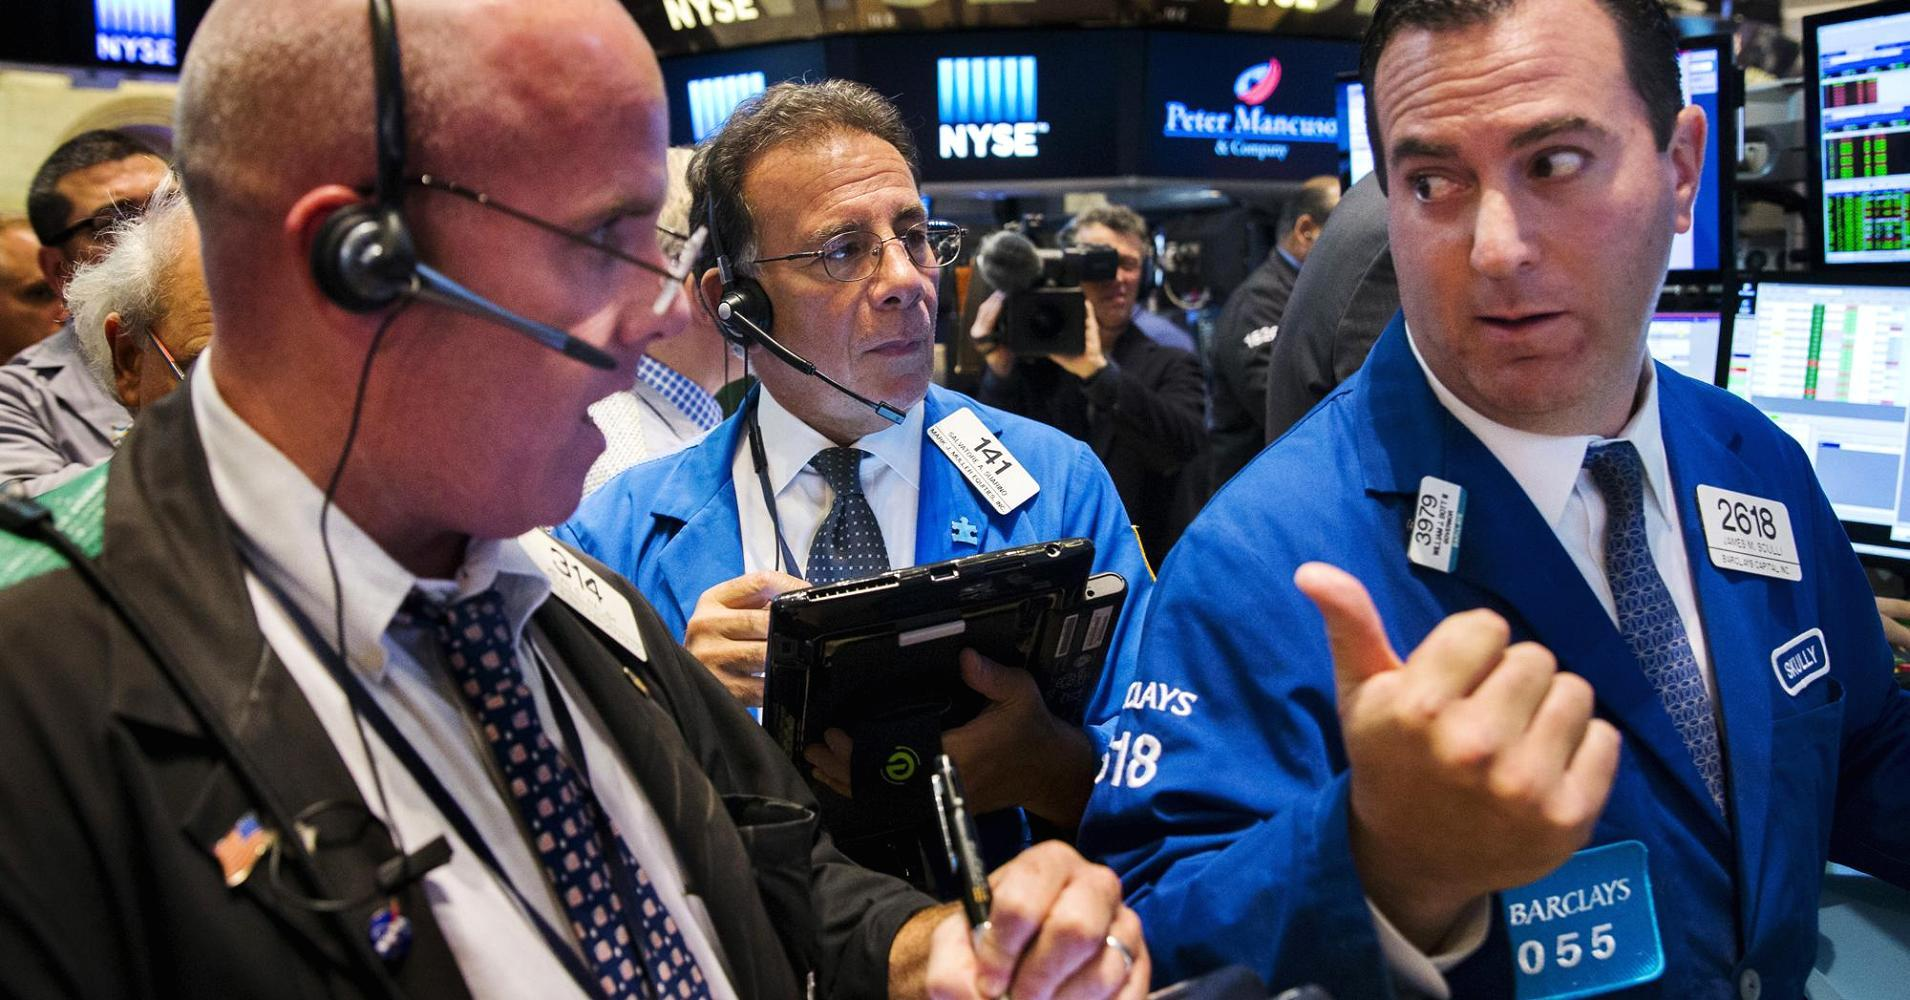 Stocks more than halve losses; oil turnaround boosts energy 1%